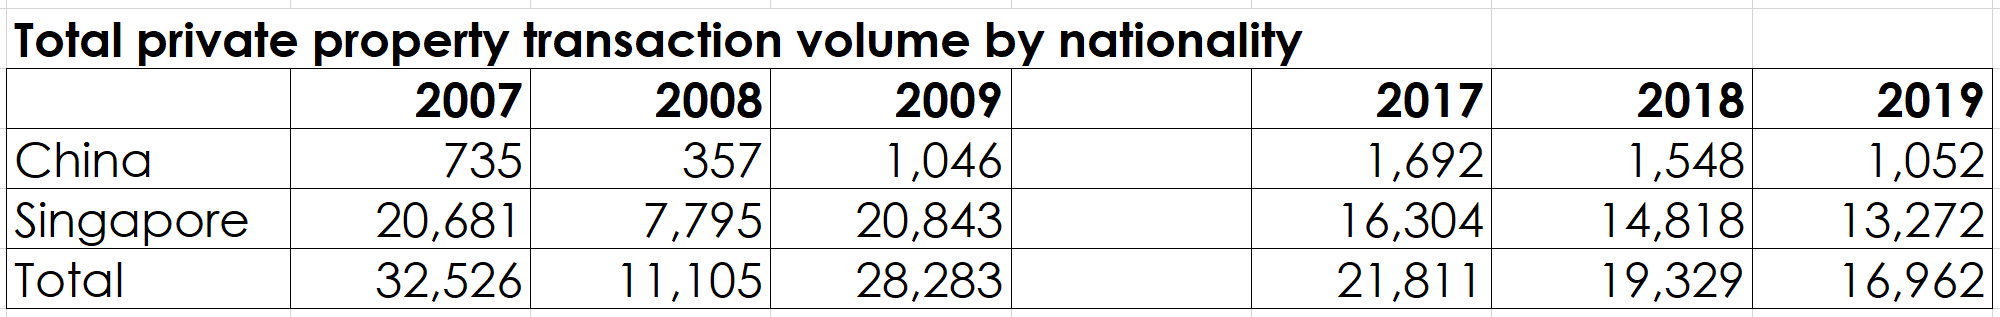 total private property transaction volume china singapore